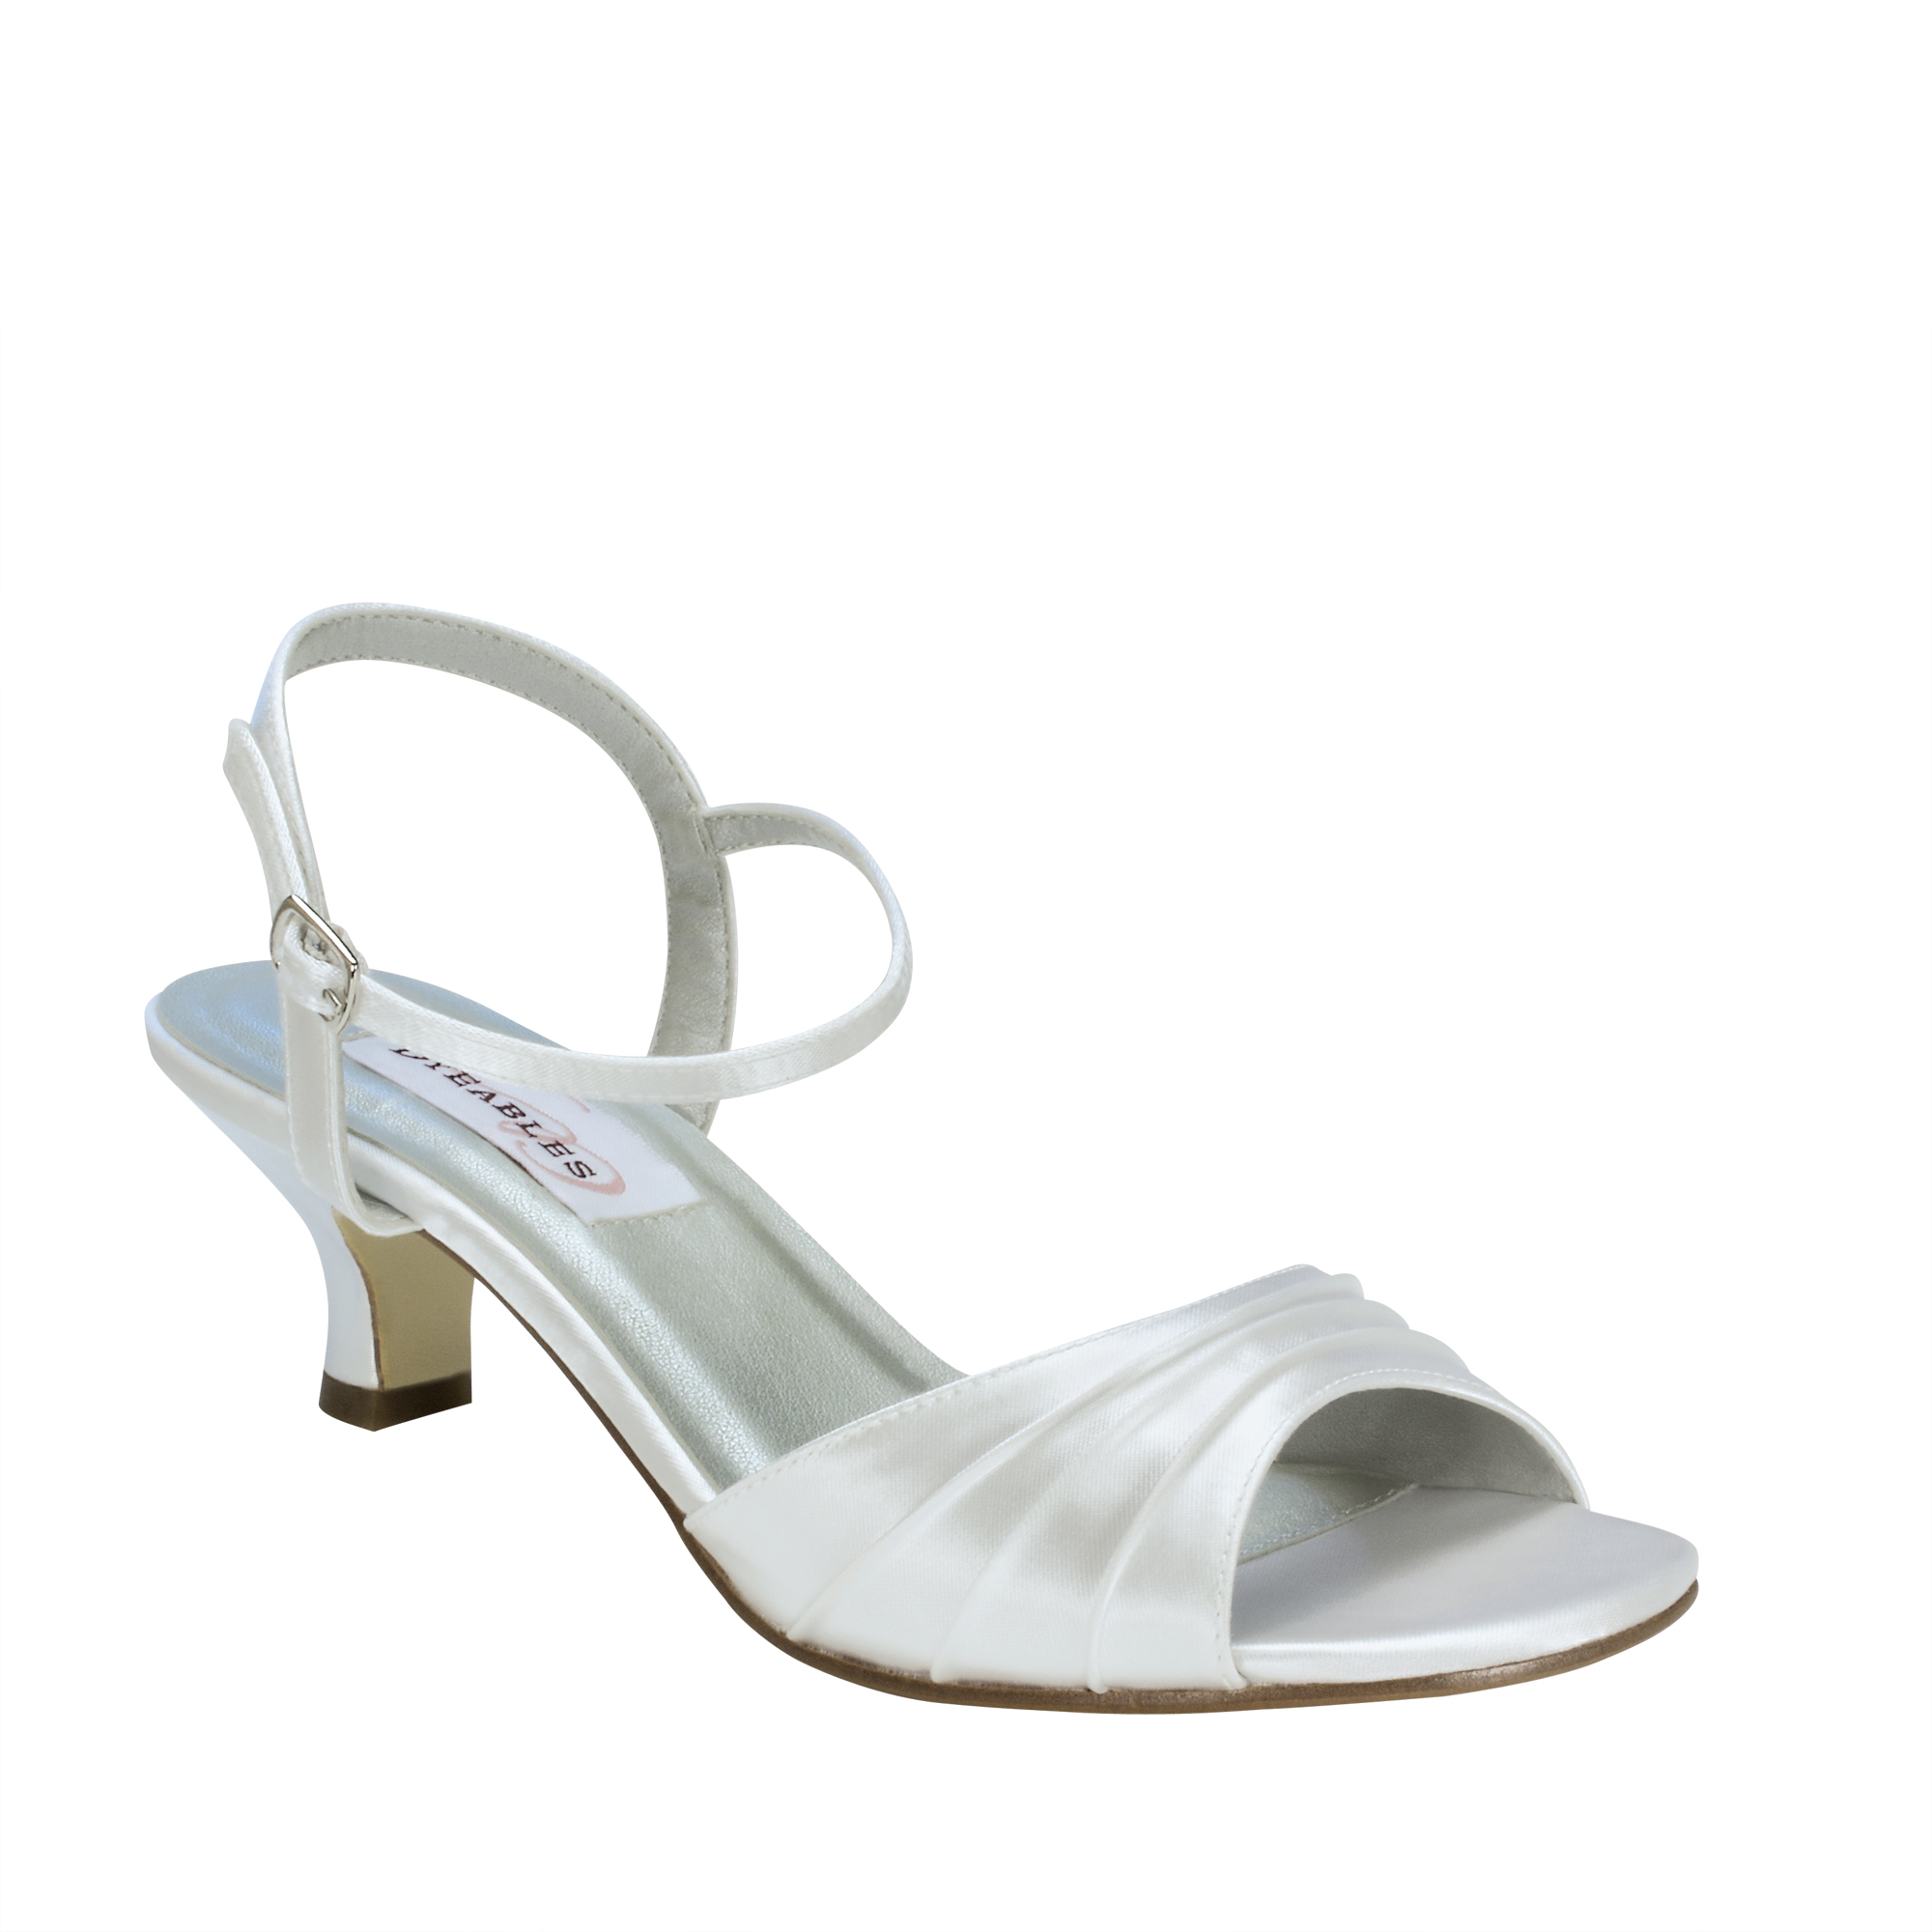 "DYEABLES BRIELLE WHITE SATIN 1 3 4"" HEEL Dyeable Shoe Store"